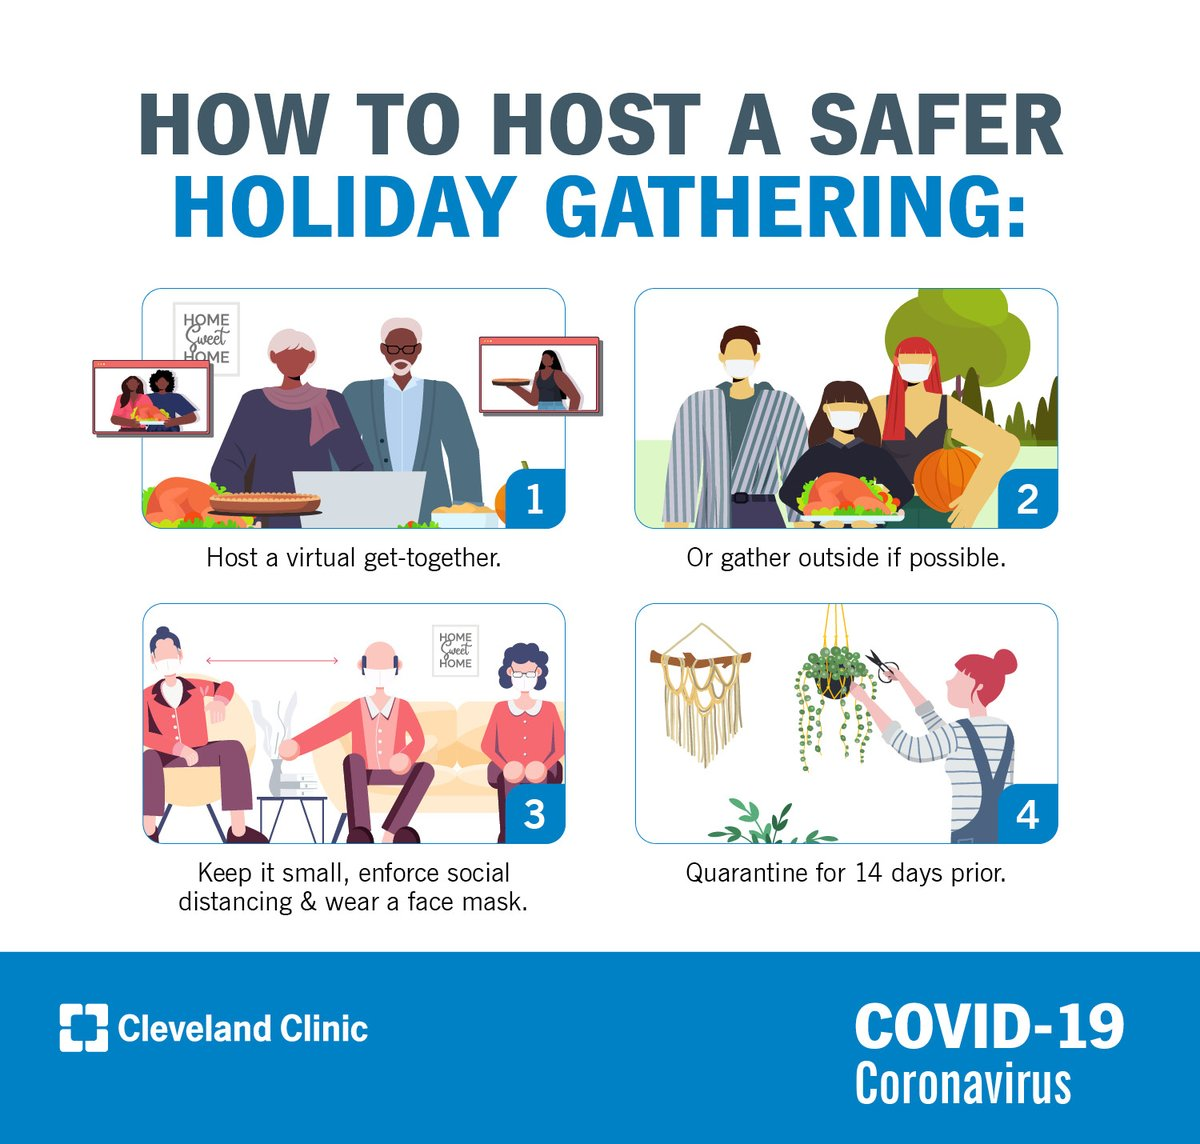 With the ongoing coronavirus (COVID-19) pandemic, holiday plans are going to look a lot different than usual. https://t.co/m5Zz5gavUh https://t.co/tV8T94GWjJ